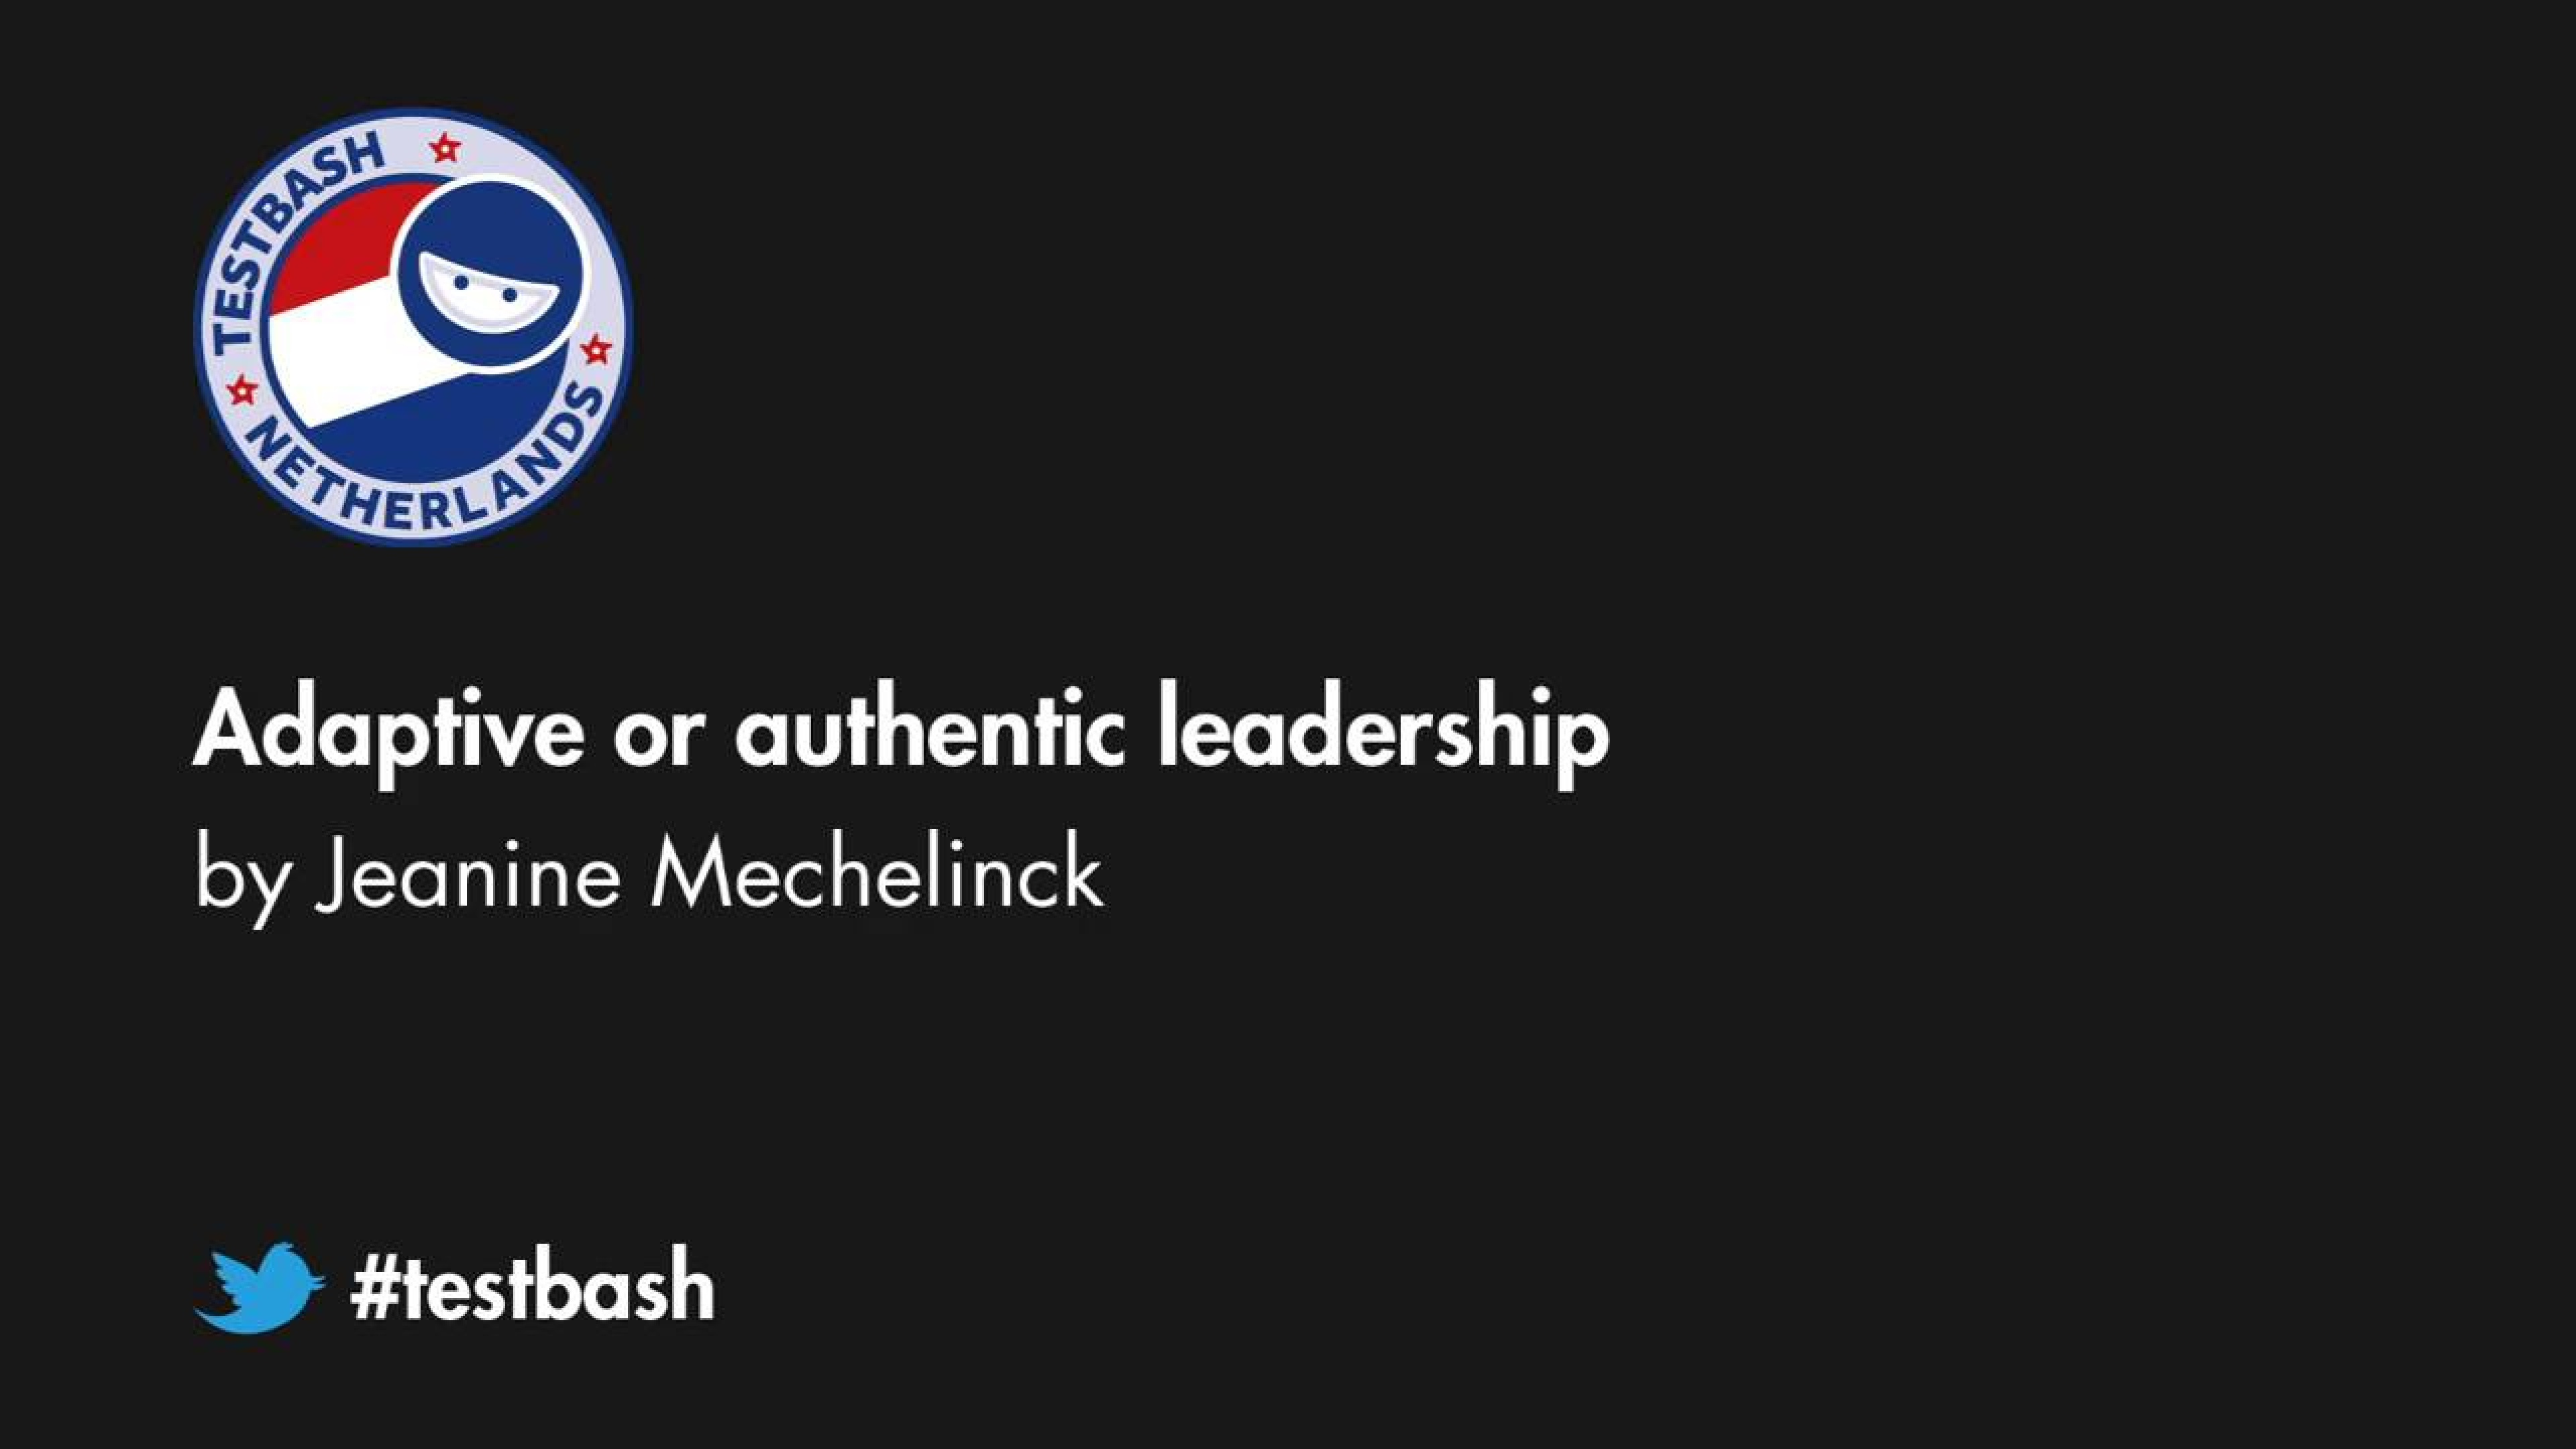 Adaptive or authentic leadership? - Jeanine Mechelinck